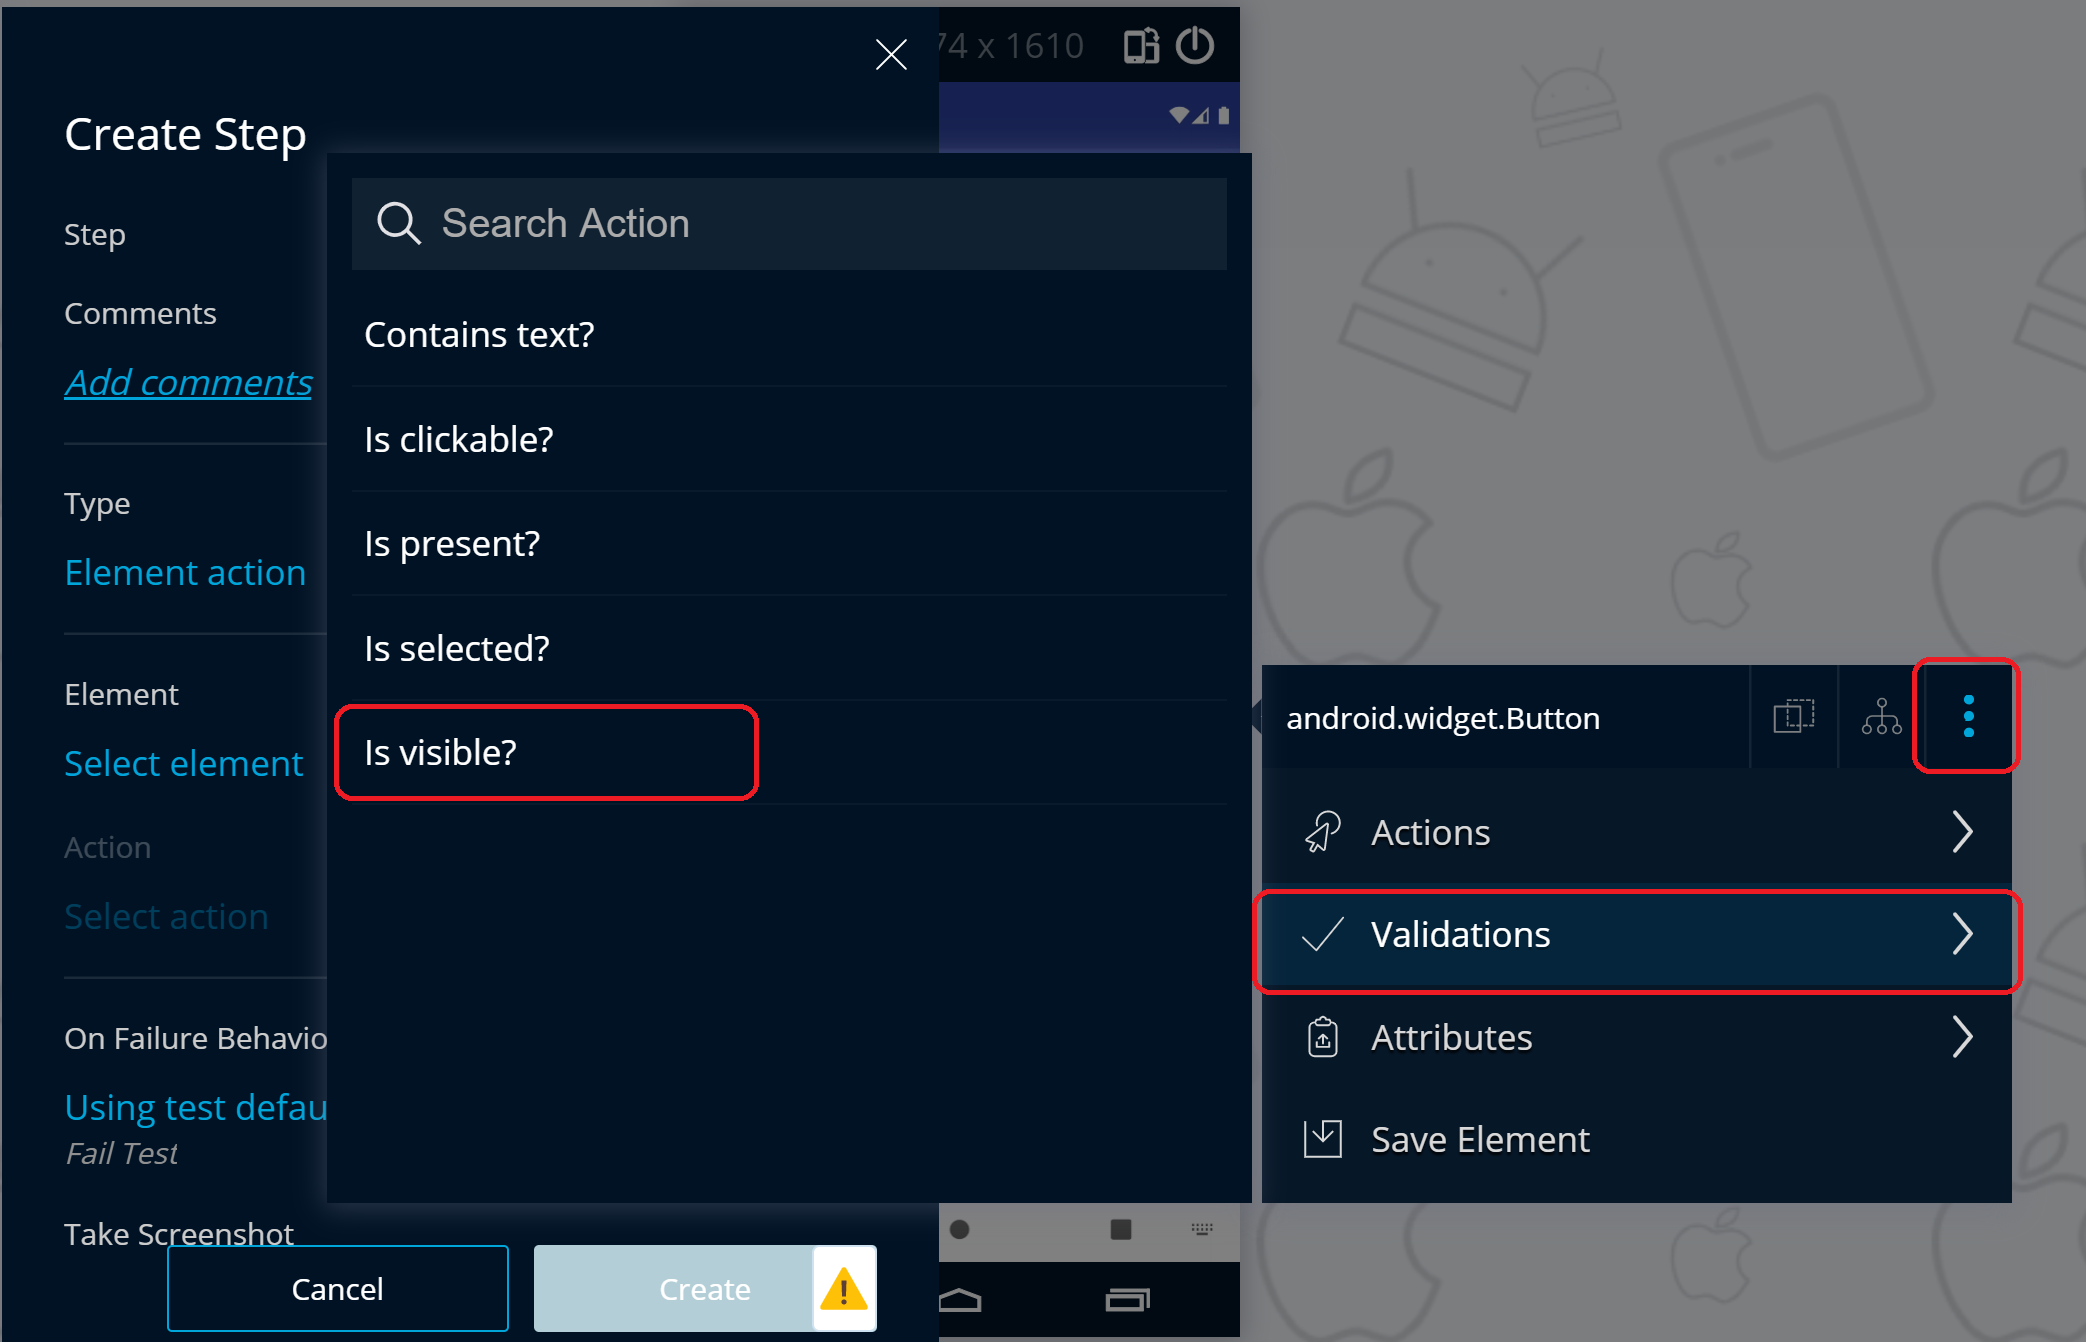 Validate Logout button is visible